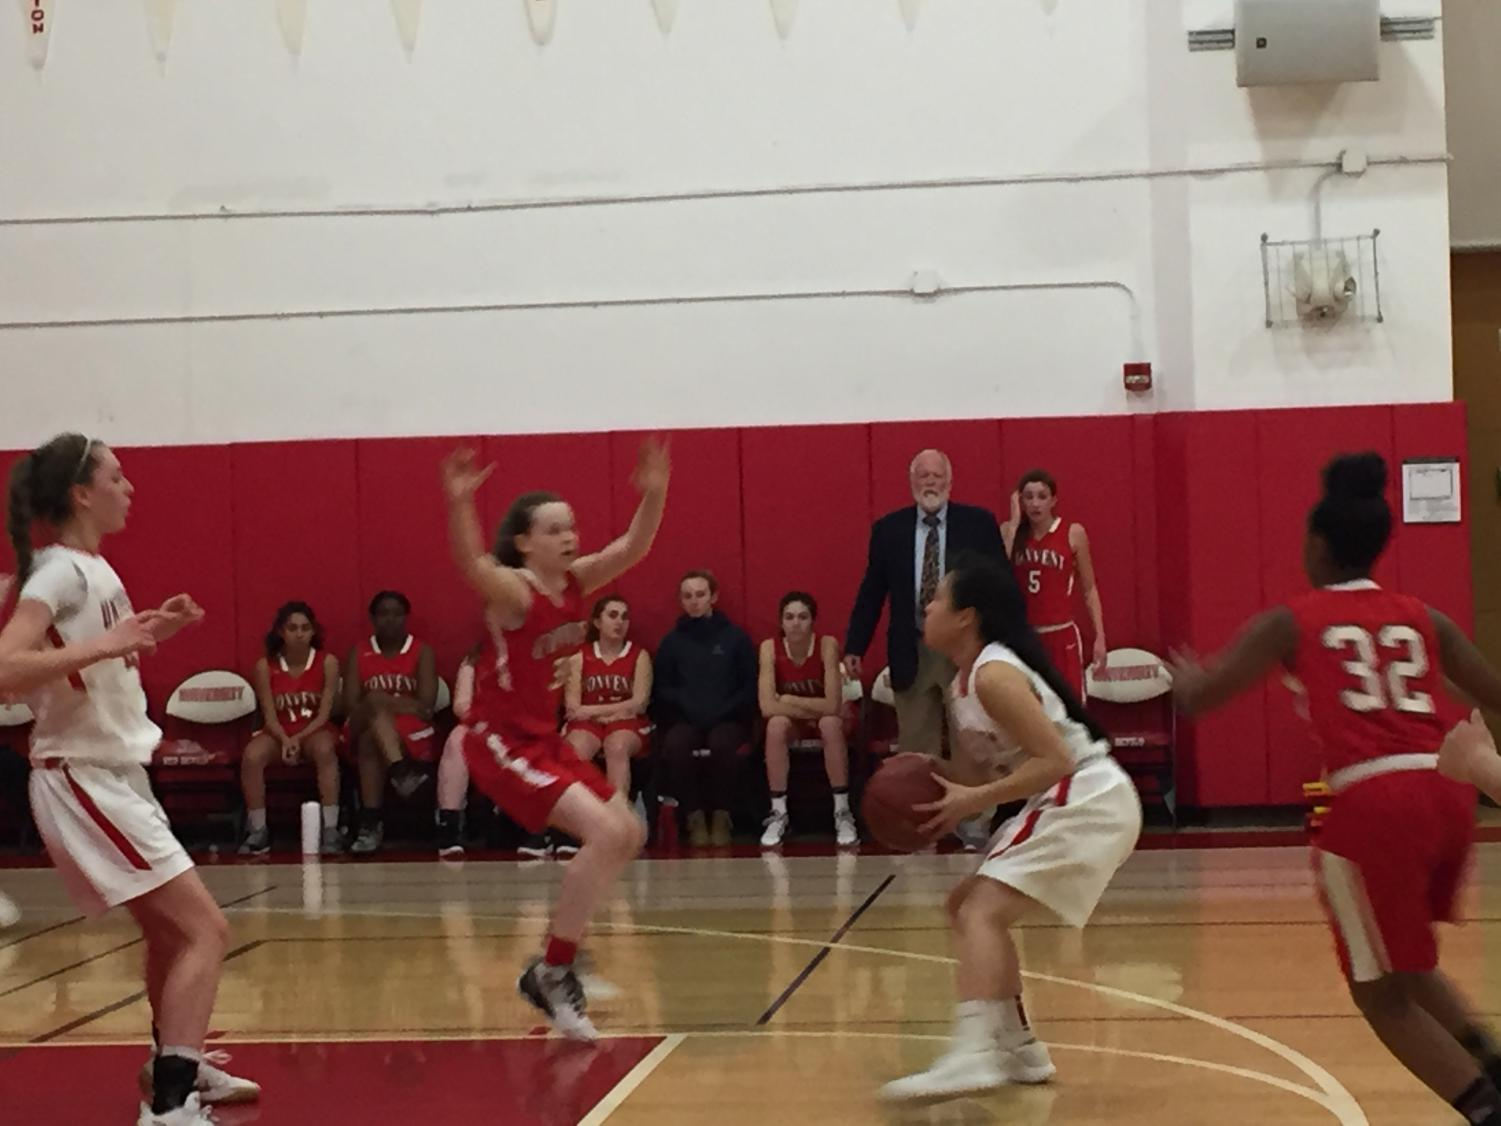 Sophomore Cece Mcquaid raises her arms as she tries to block a ball pass. The team played today's game at San Francisco University High School before a home game this Friday.